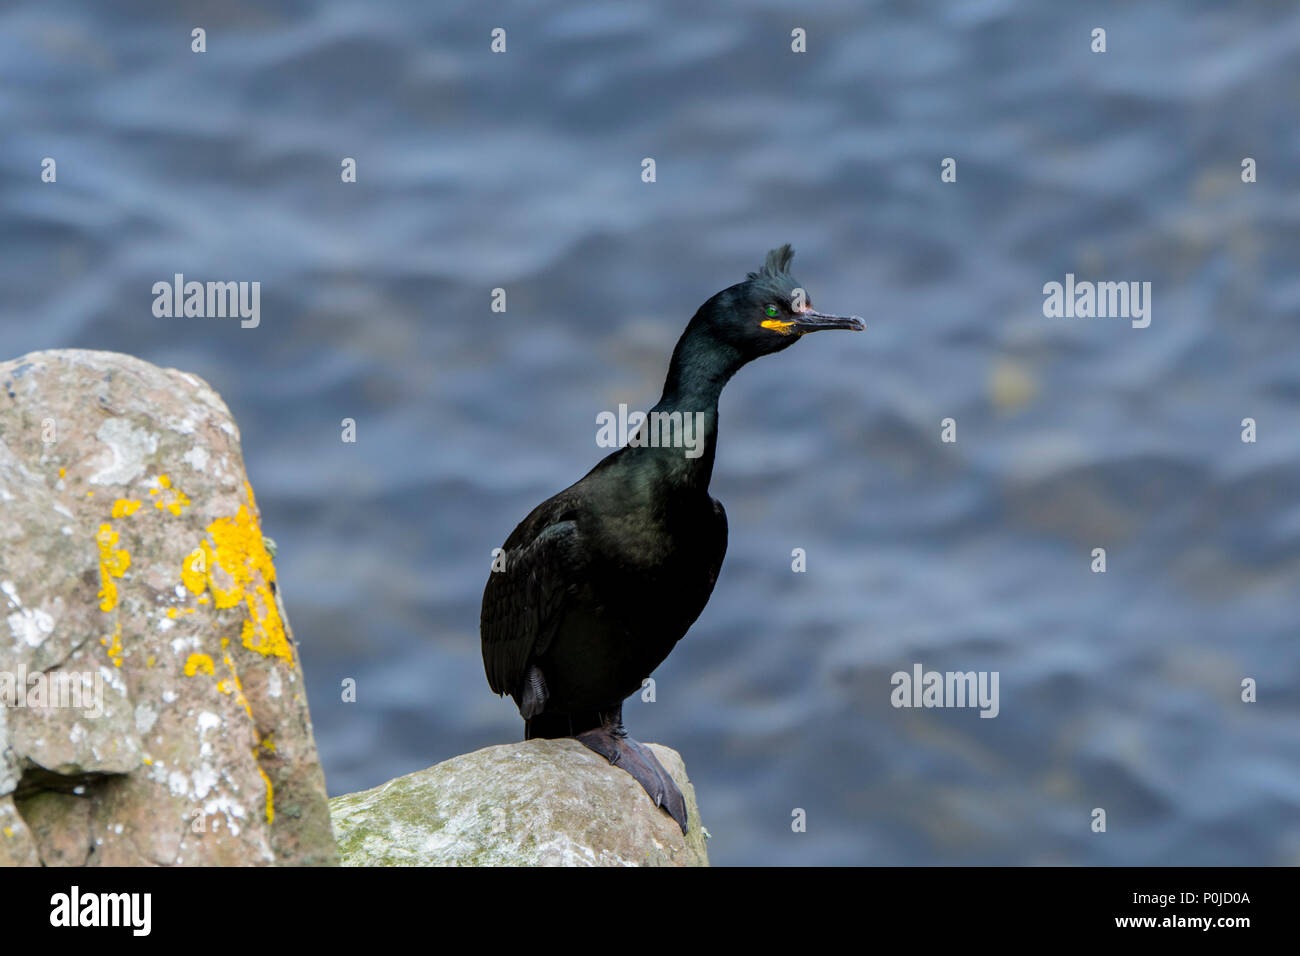 European shag / common shag (Phalacrocorax aristotelis) perched on rock in sea cliff in spring, Shetland Islands, Scotland, UK - Stock Image